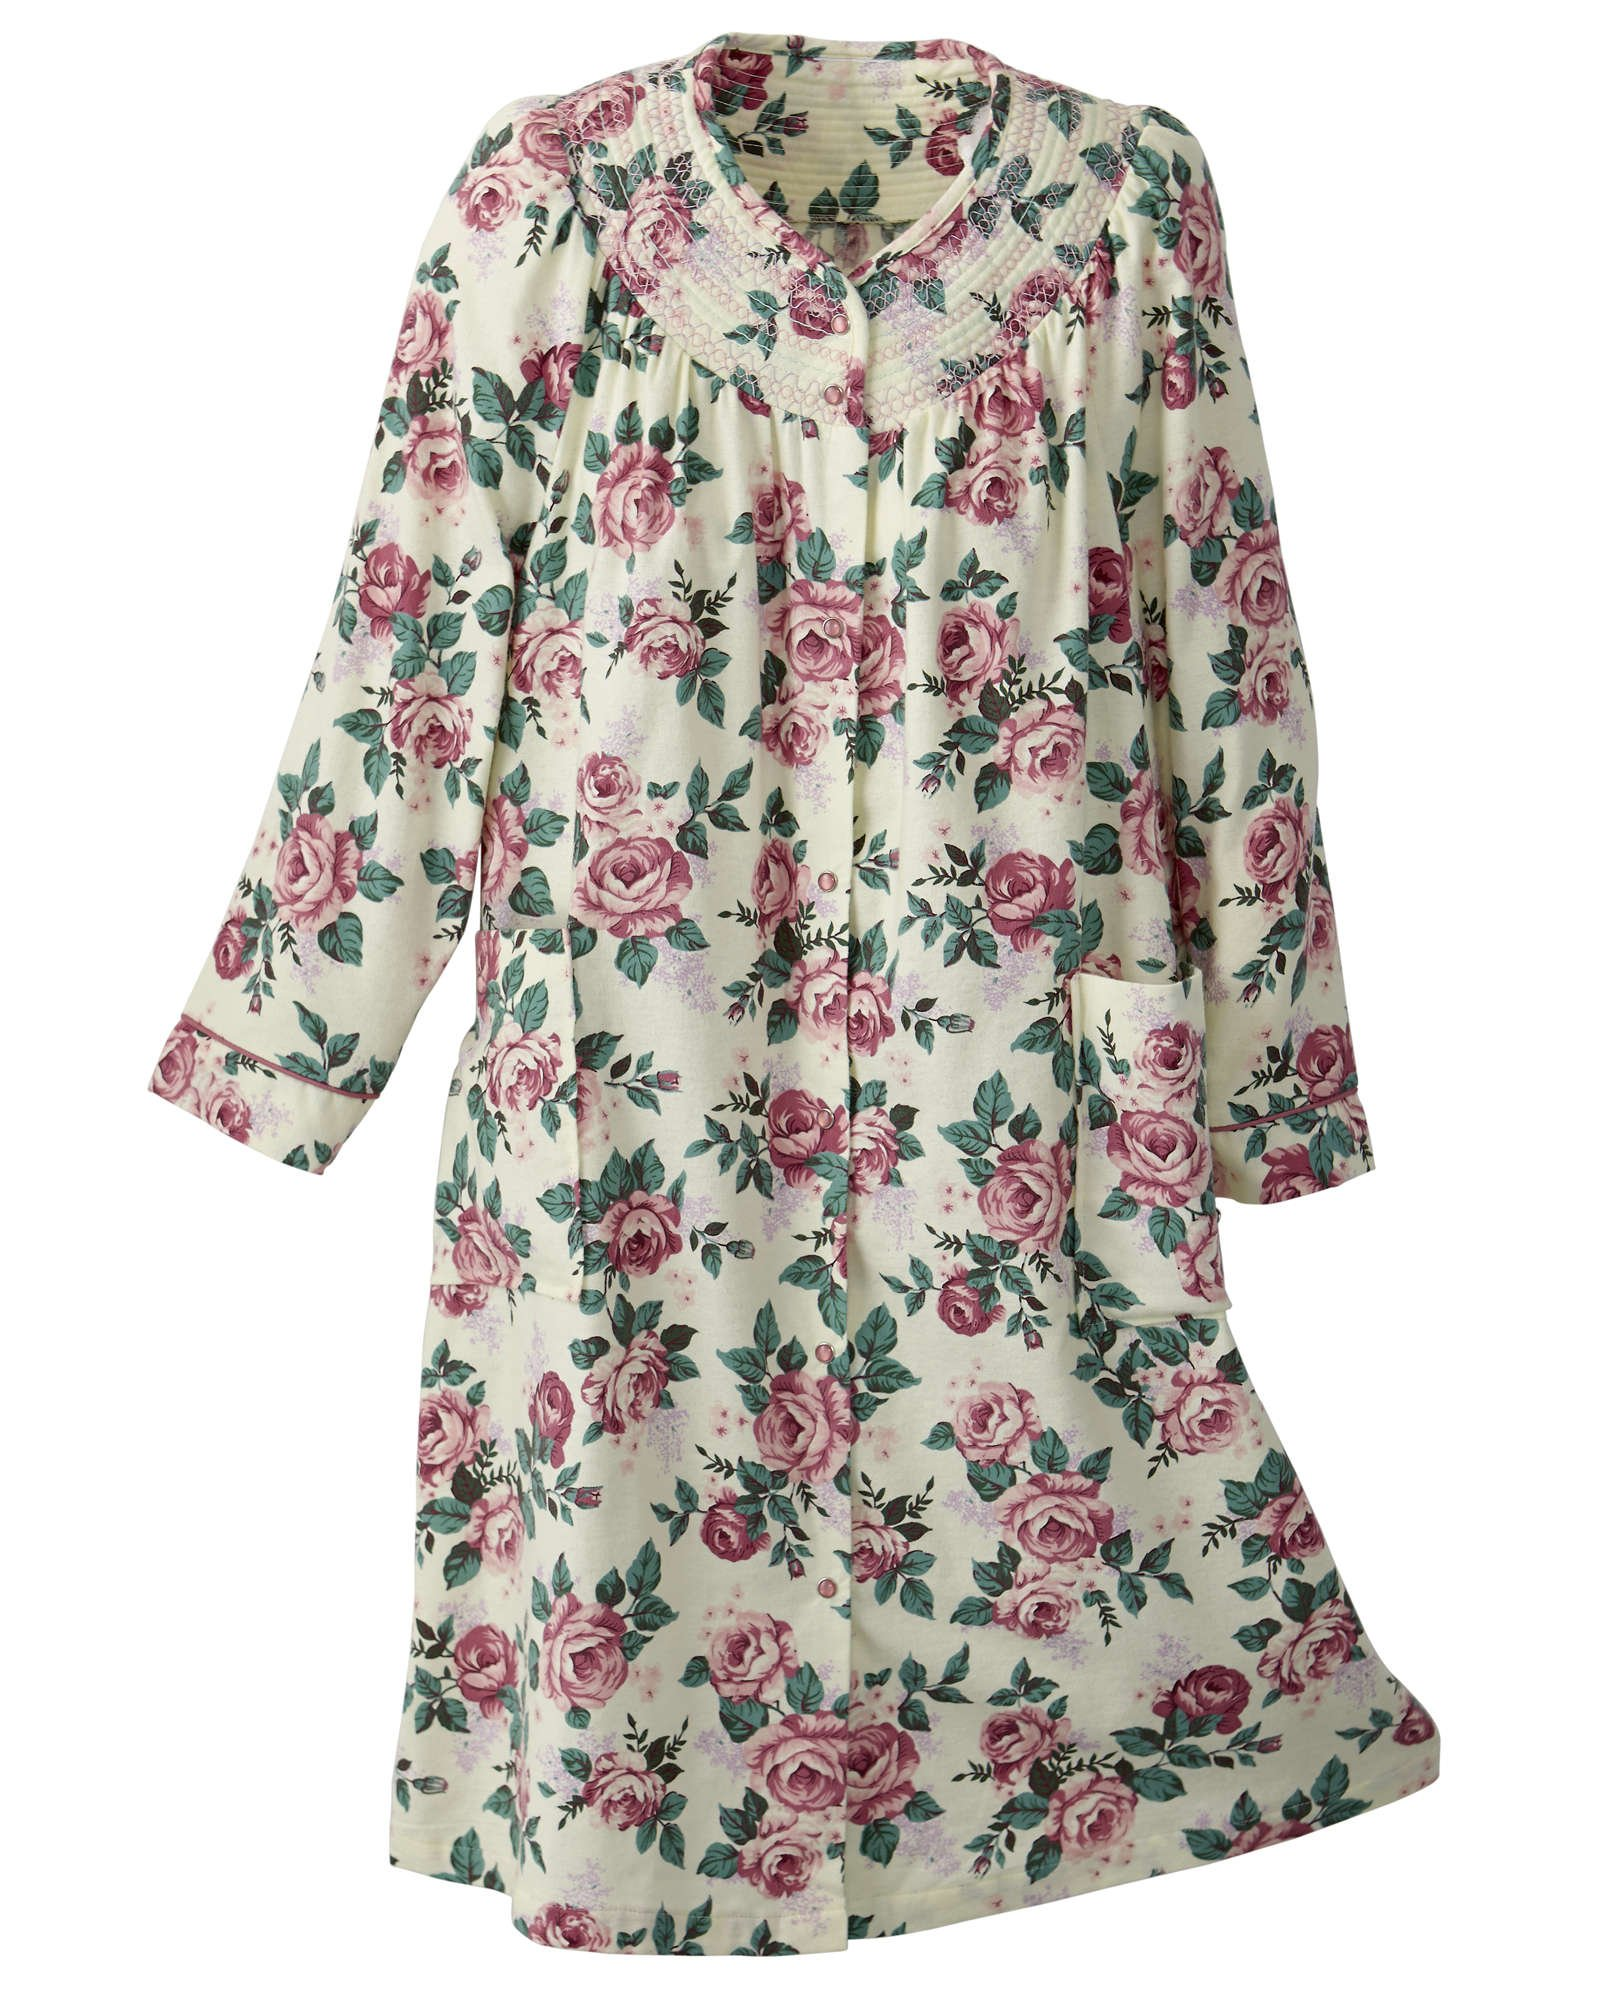 National Flannel House Coat, Pink Floral, 2X - Misses, Womens by National (Image #1)